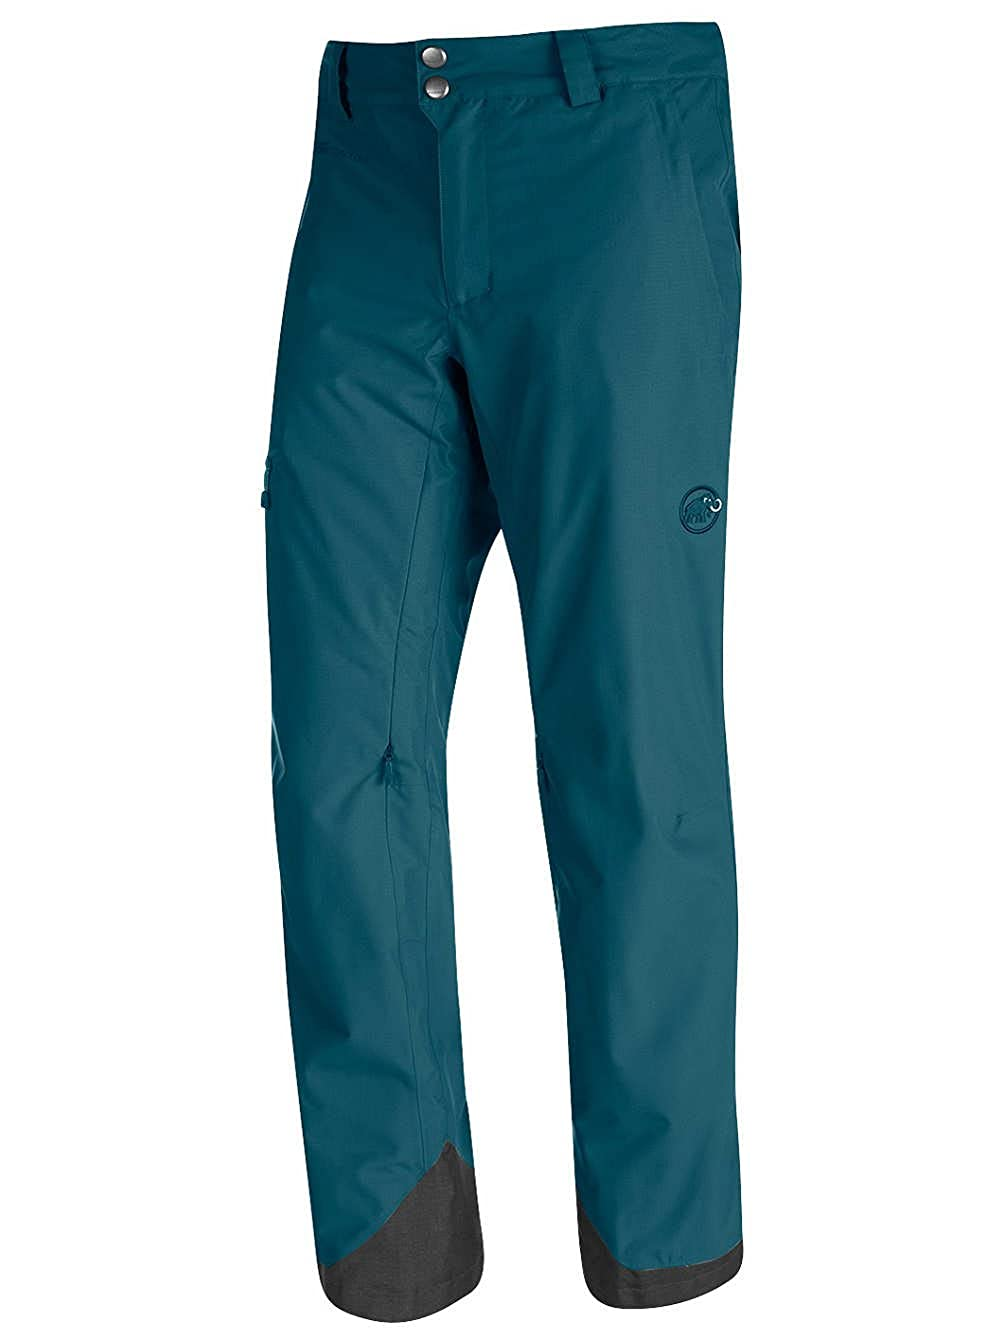 Mens 50 1020-09362-5325-50-10 Orion Mammut Cruise HS Thermo Snow Pants